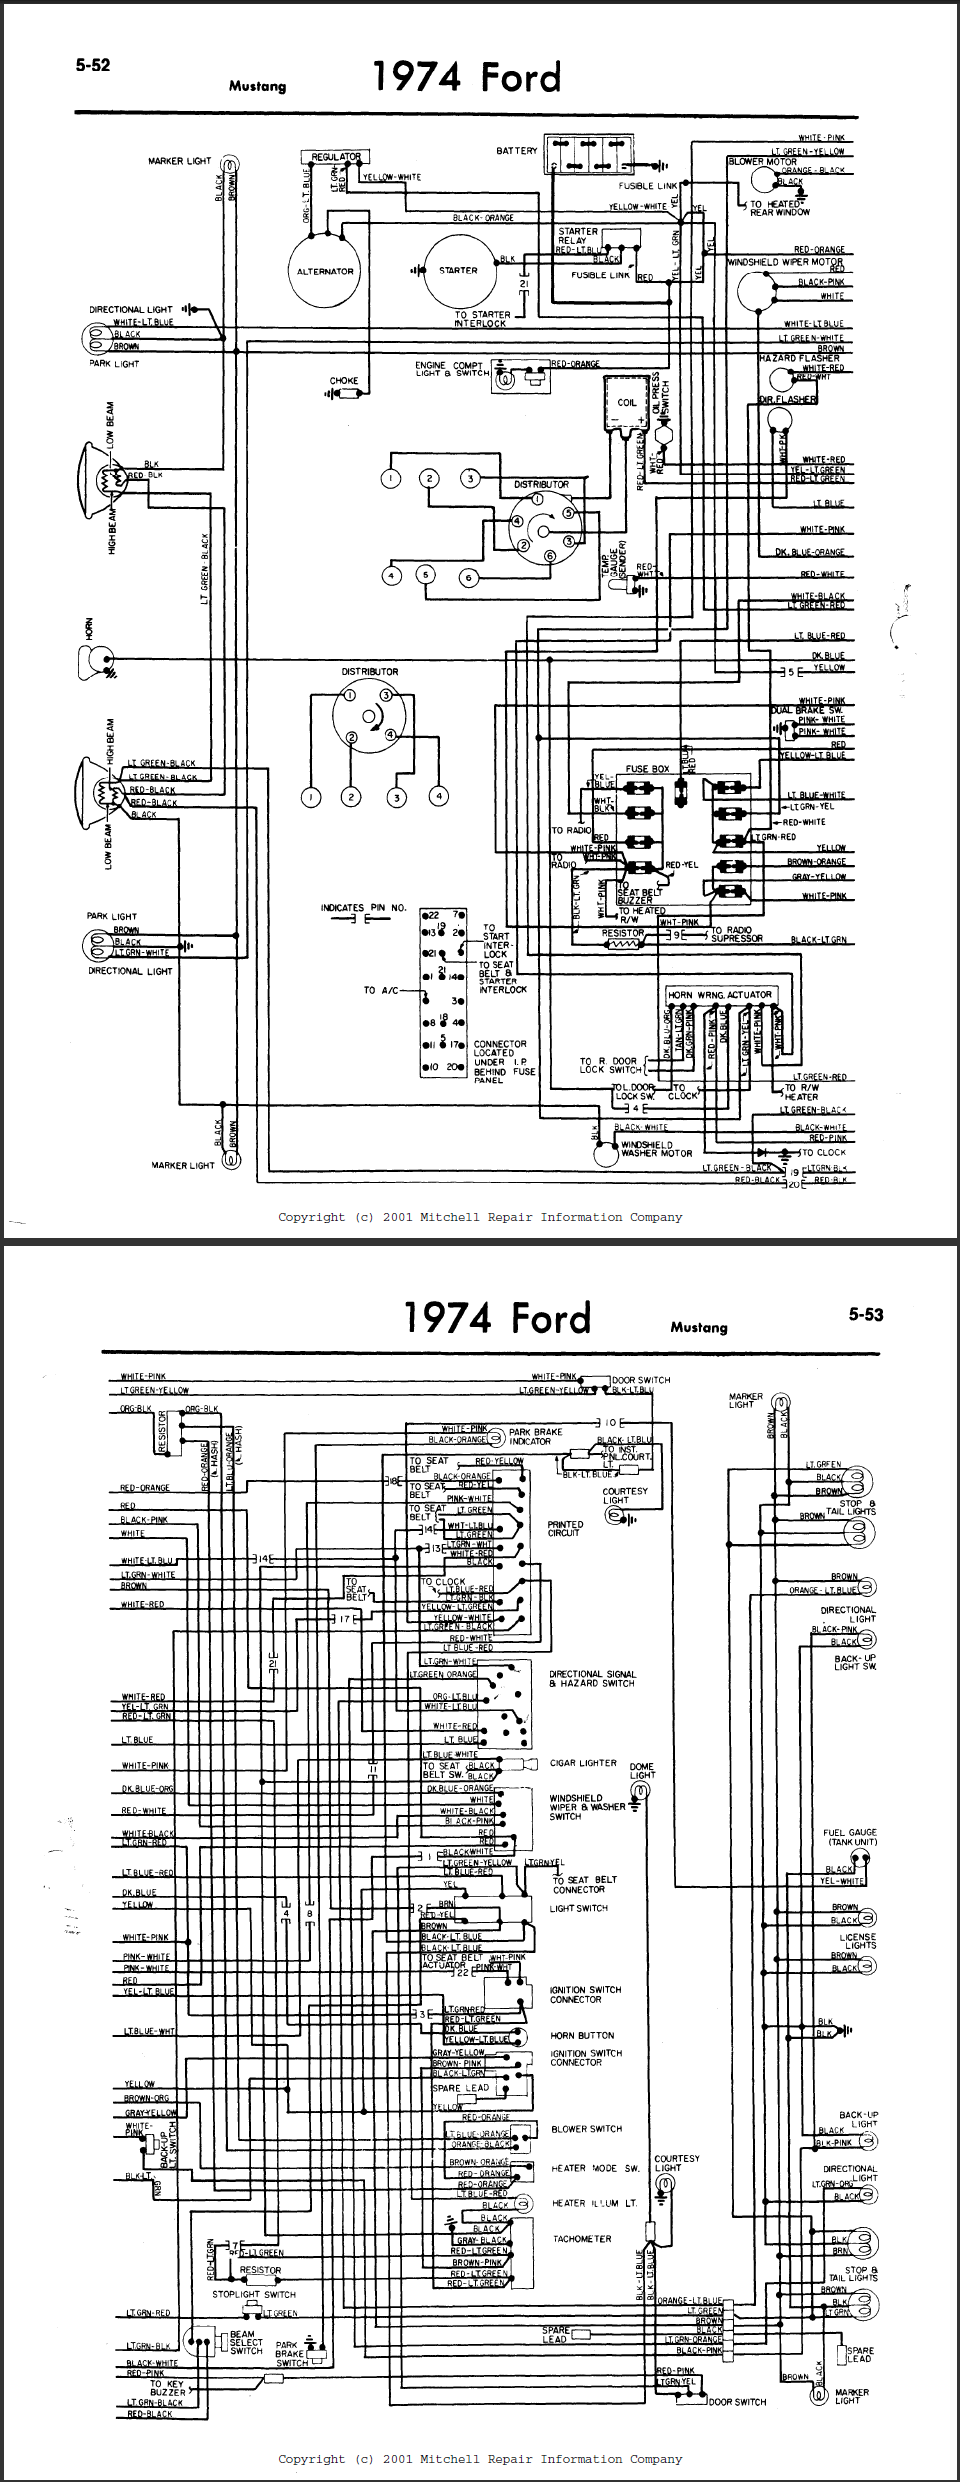 i am rebuilding a 1974 ford mustang ii, and i need the ... 1974 ford courier wiring diagram 1974 ford alternator wiring diagram #13